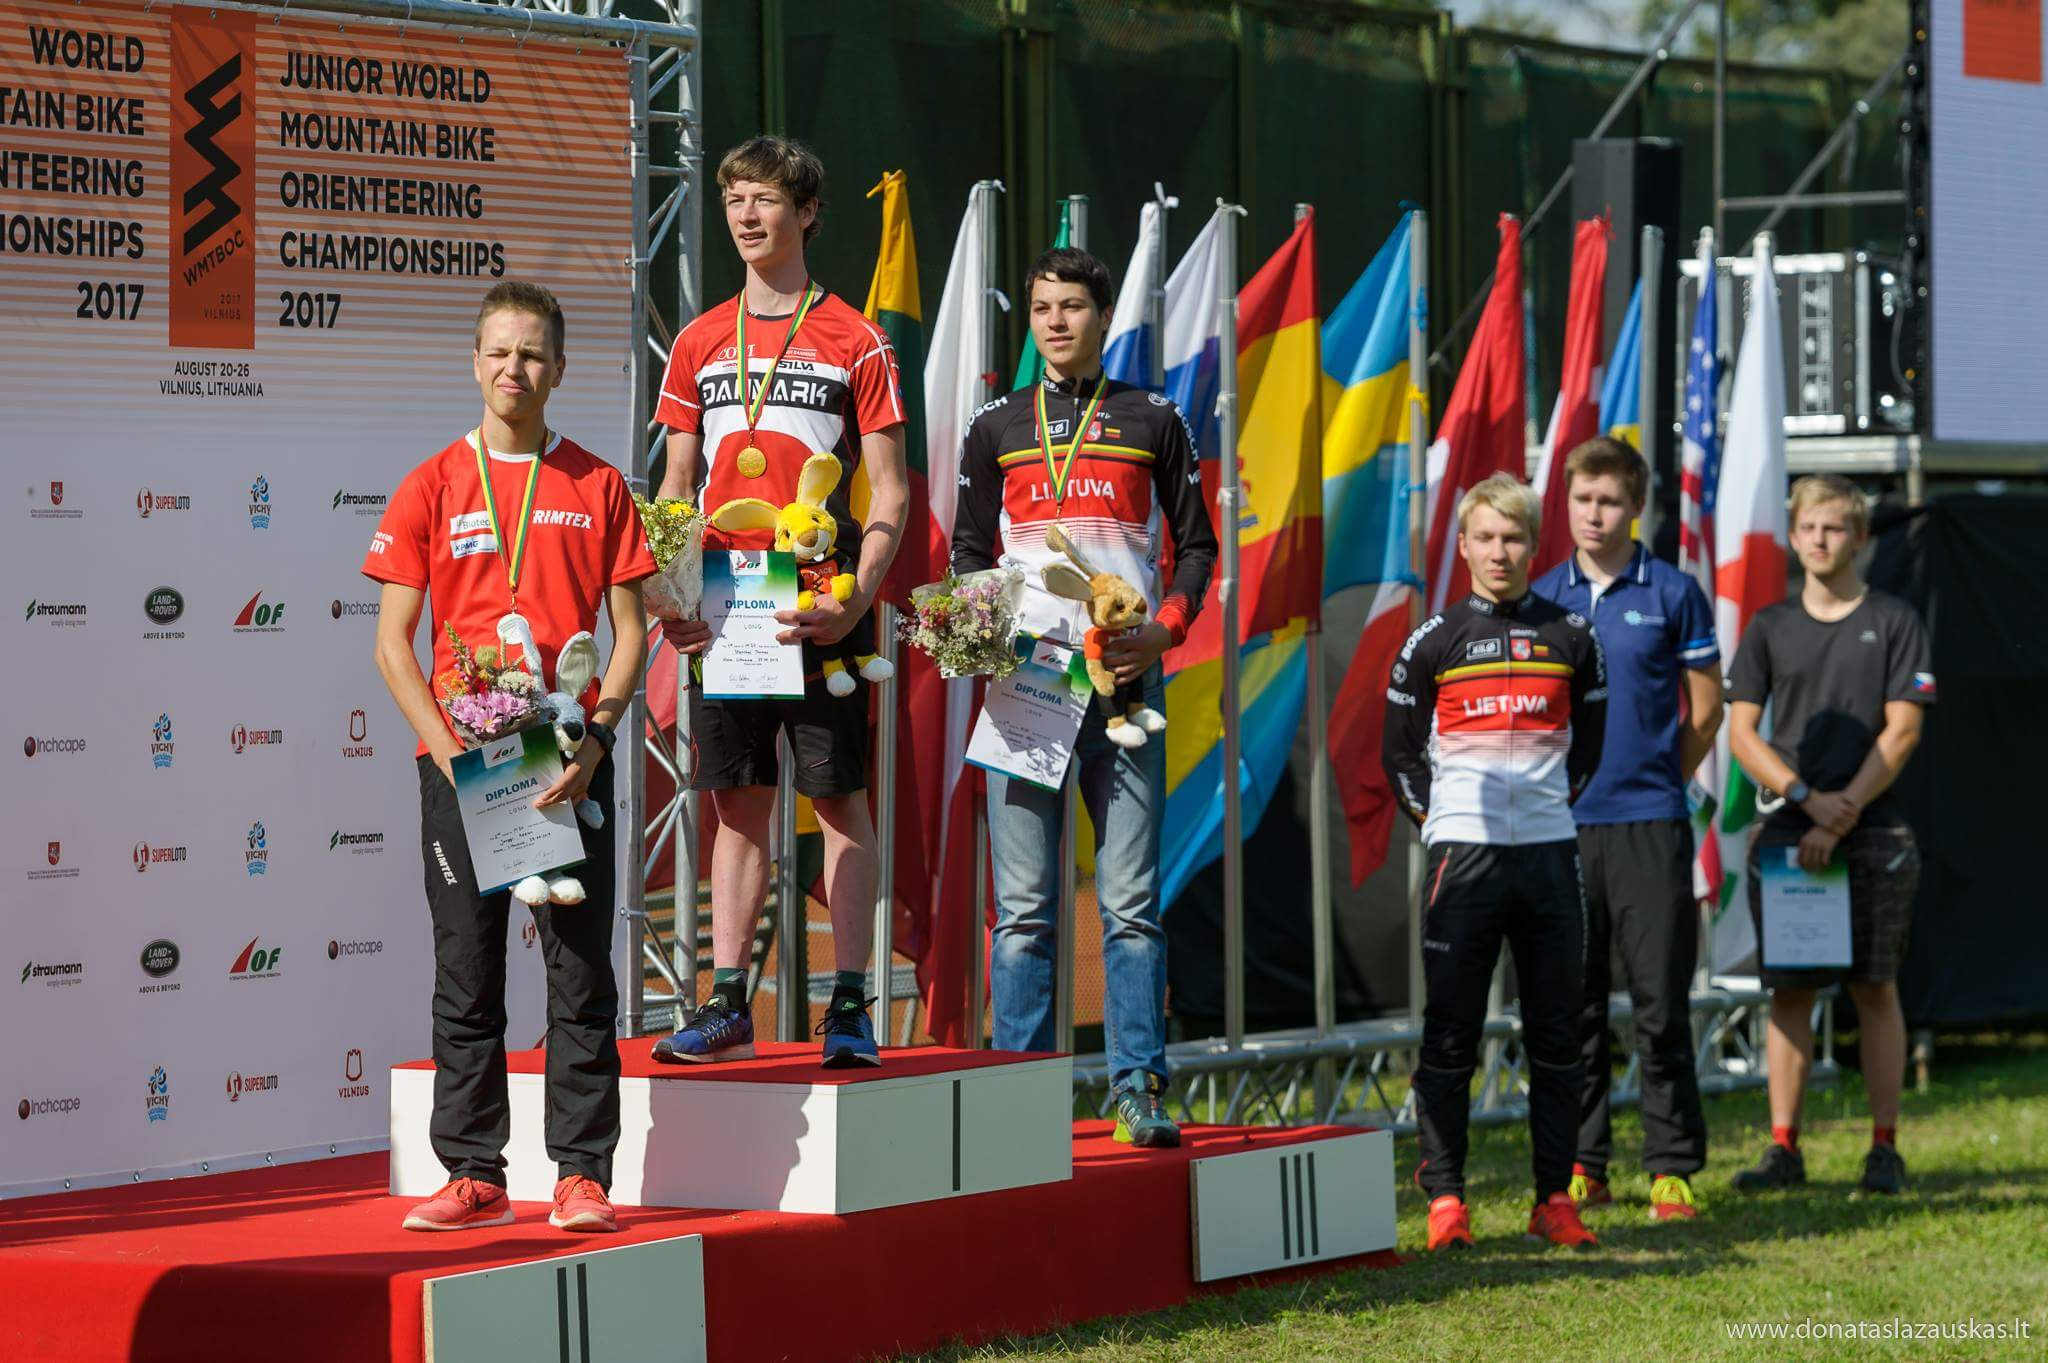 Prize giving ceremony Long (Donatas Lazauskas)